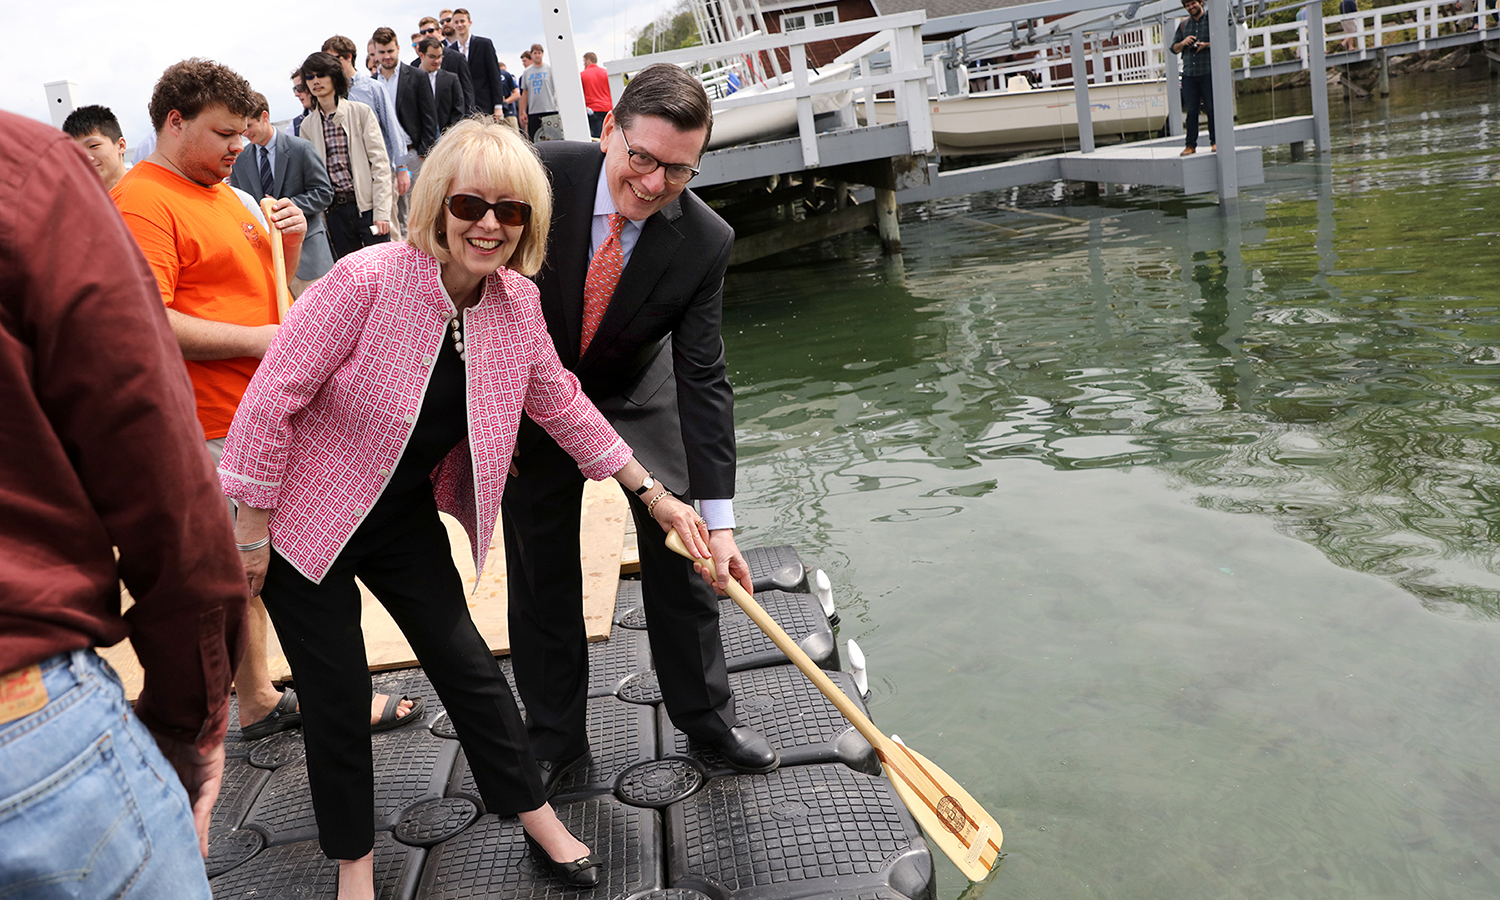 As honorary members of the Hobart College Class of 2017, Mark D. Gearan and Mary Herlihy Gearan dip their oar in Seneca Lake.